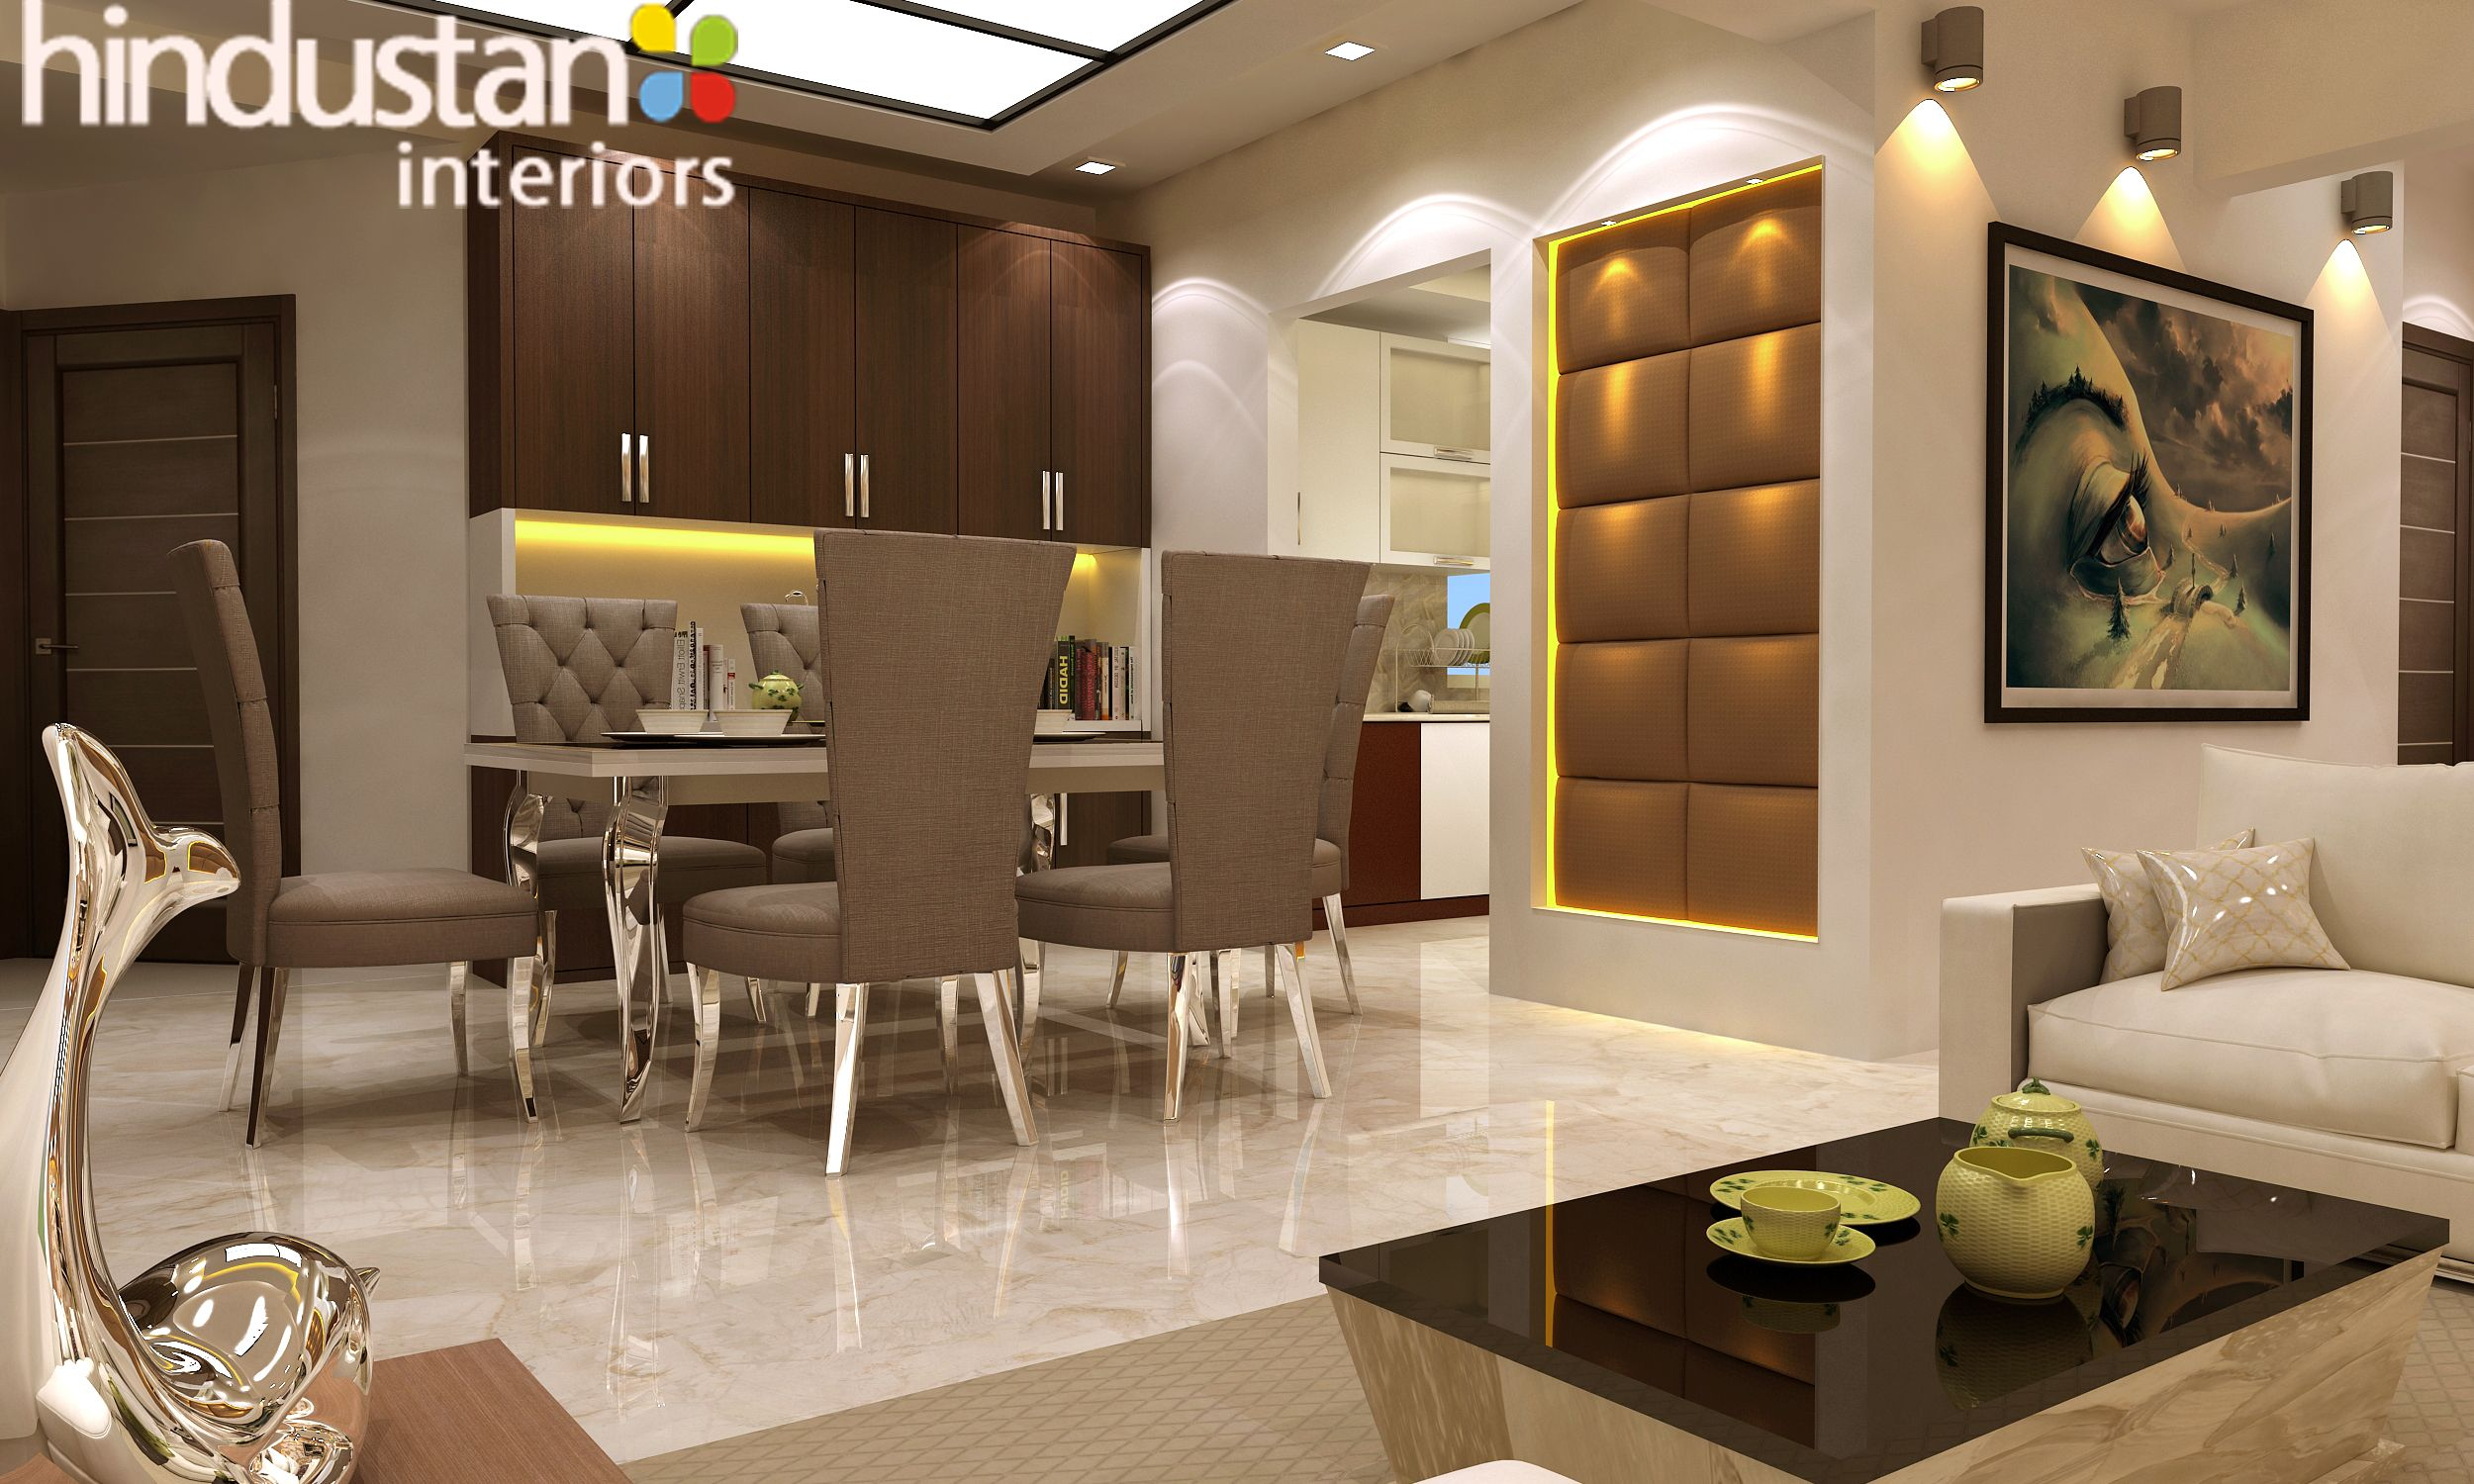 Etonnant Hindustan Interiors Offers Residential Interior Designing Services In Delhi  U2013 NCR. We Are Highly Appreciated By Our Clients For Adding Charm To Their  Home ...